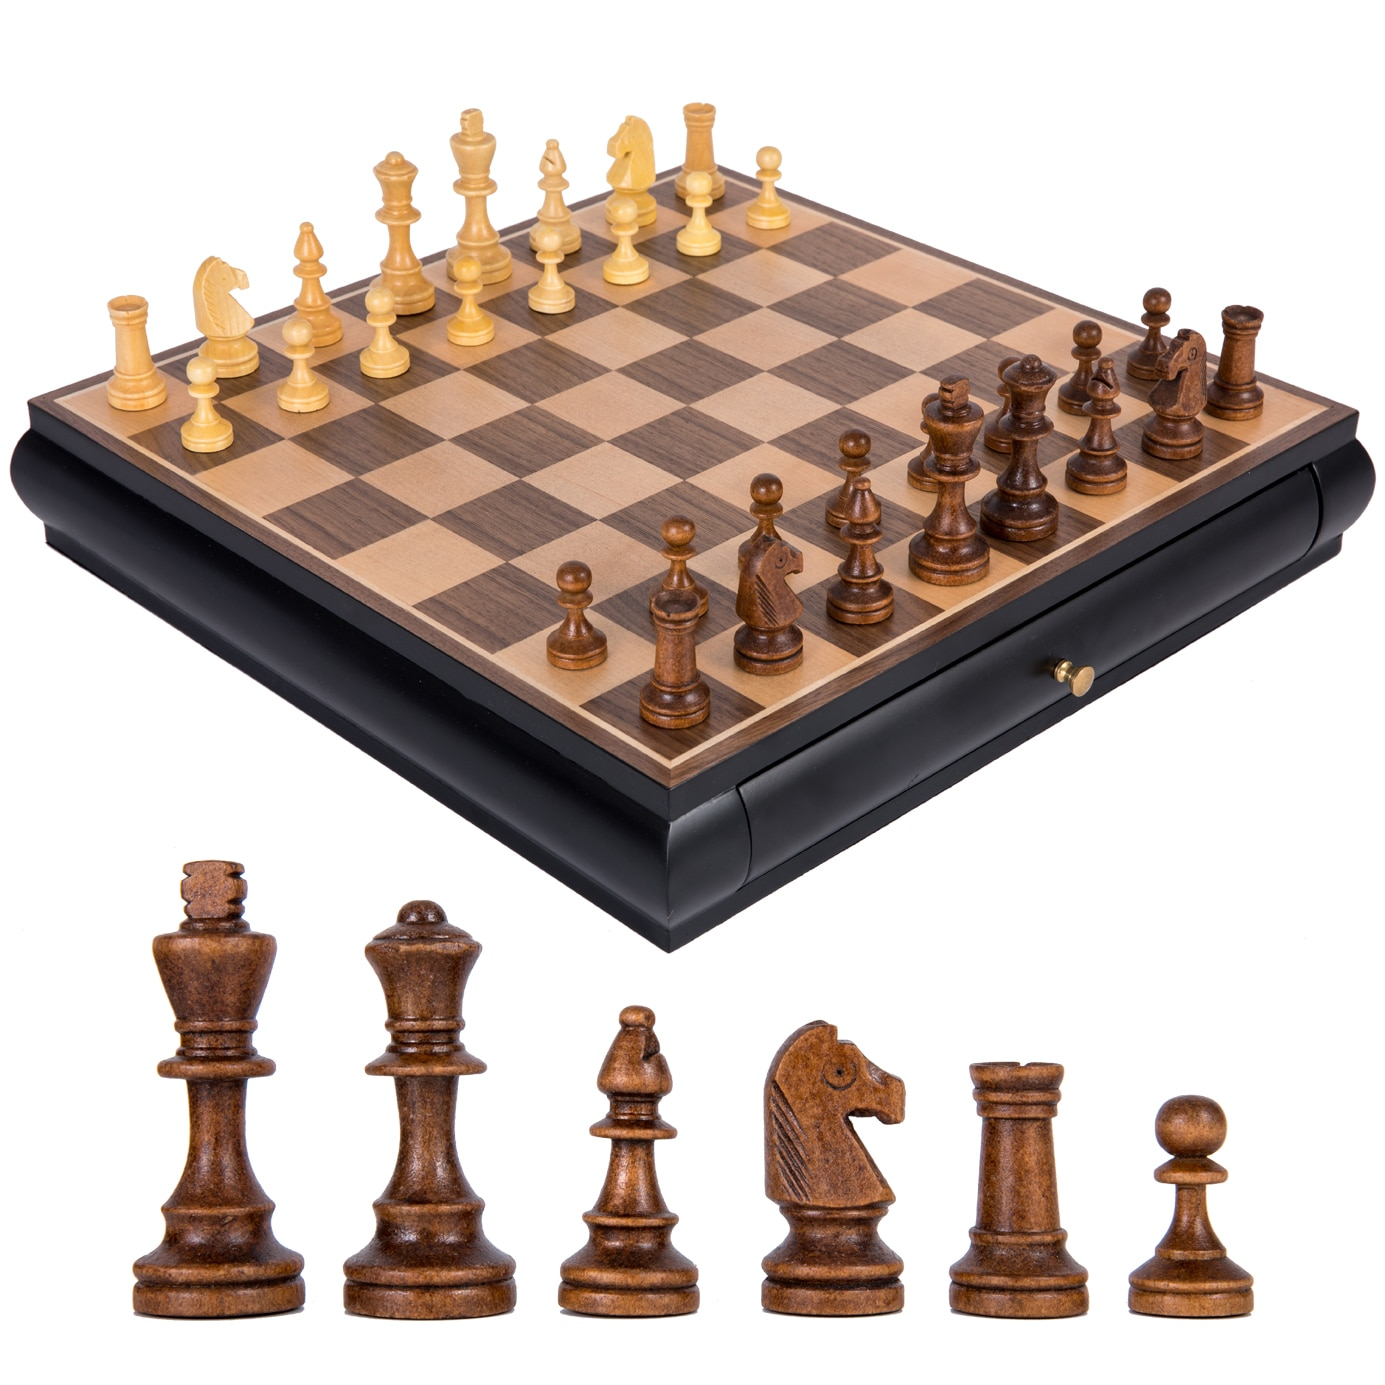 Luxury Chess Set Table Retro Classic Wooden Drawer Storage Adults Tournament Kids Professional Chess Juego De Mesa Board Game E5